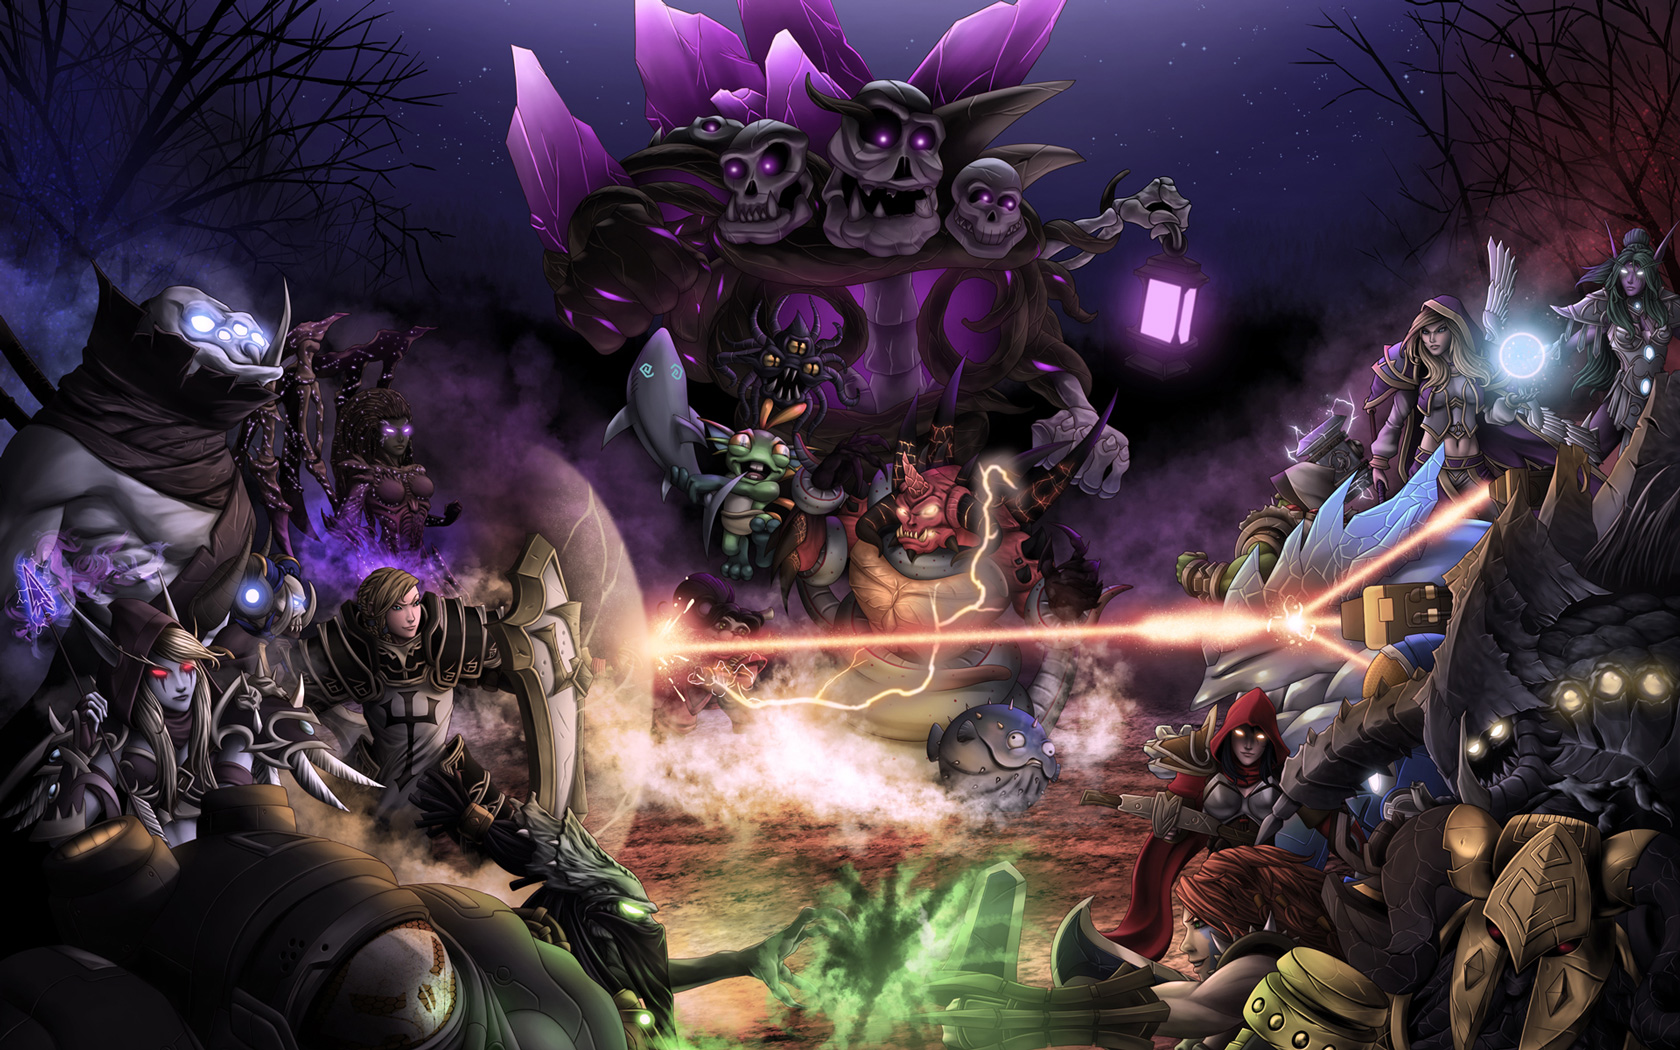 Free Heroes of the Storm Wallpaper in 1680x1050